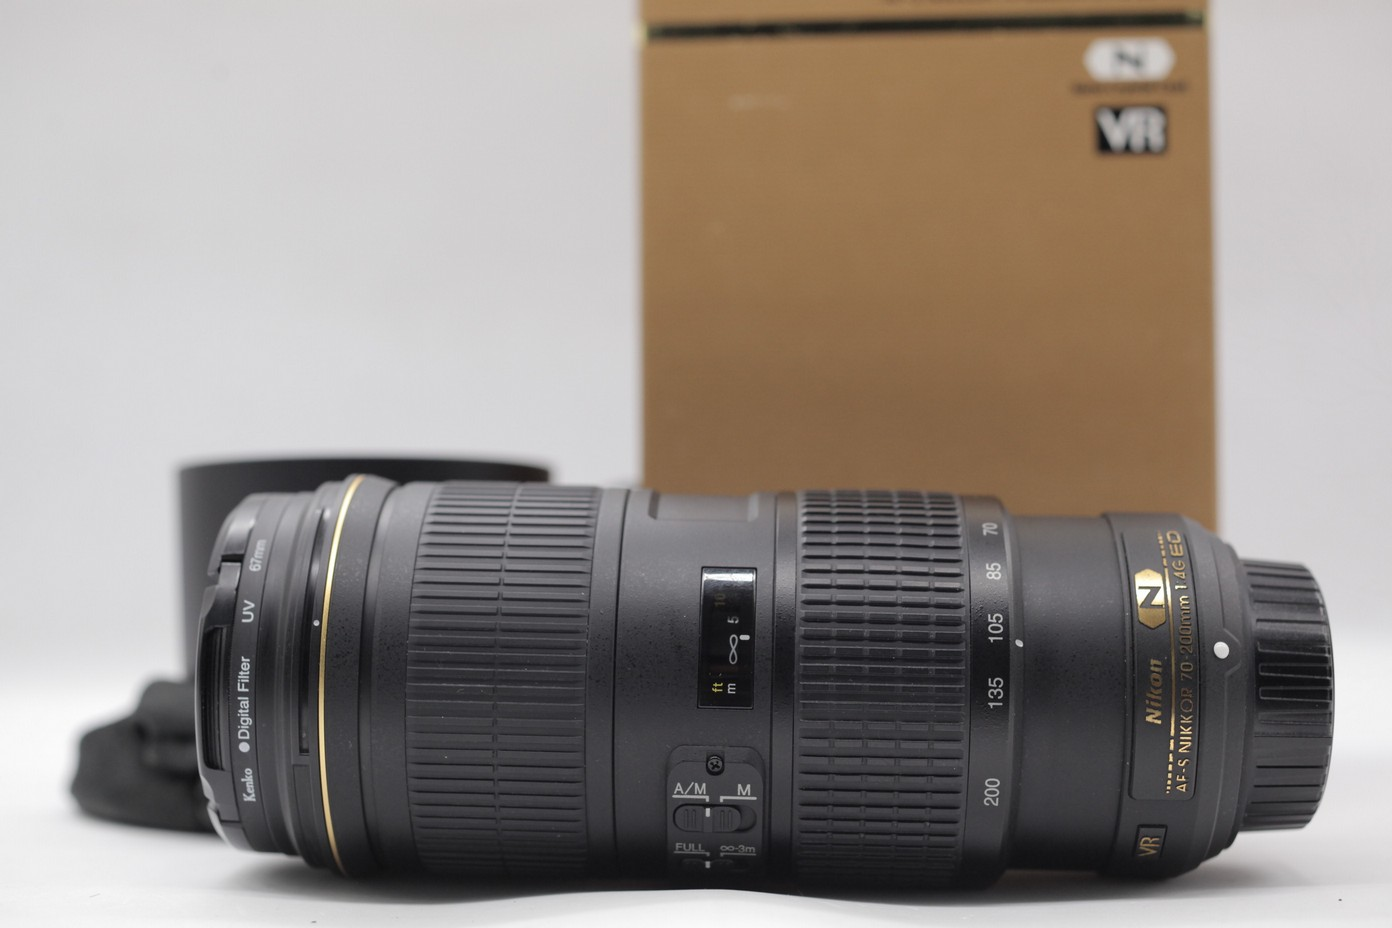 Used - Nikon 70-200mm F4G ED VR